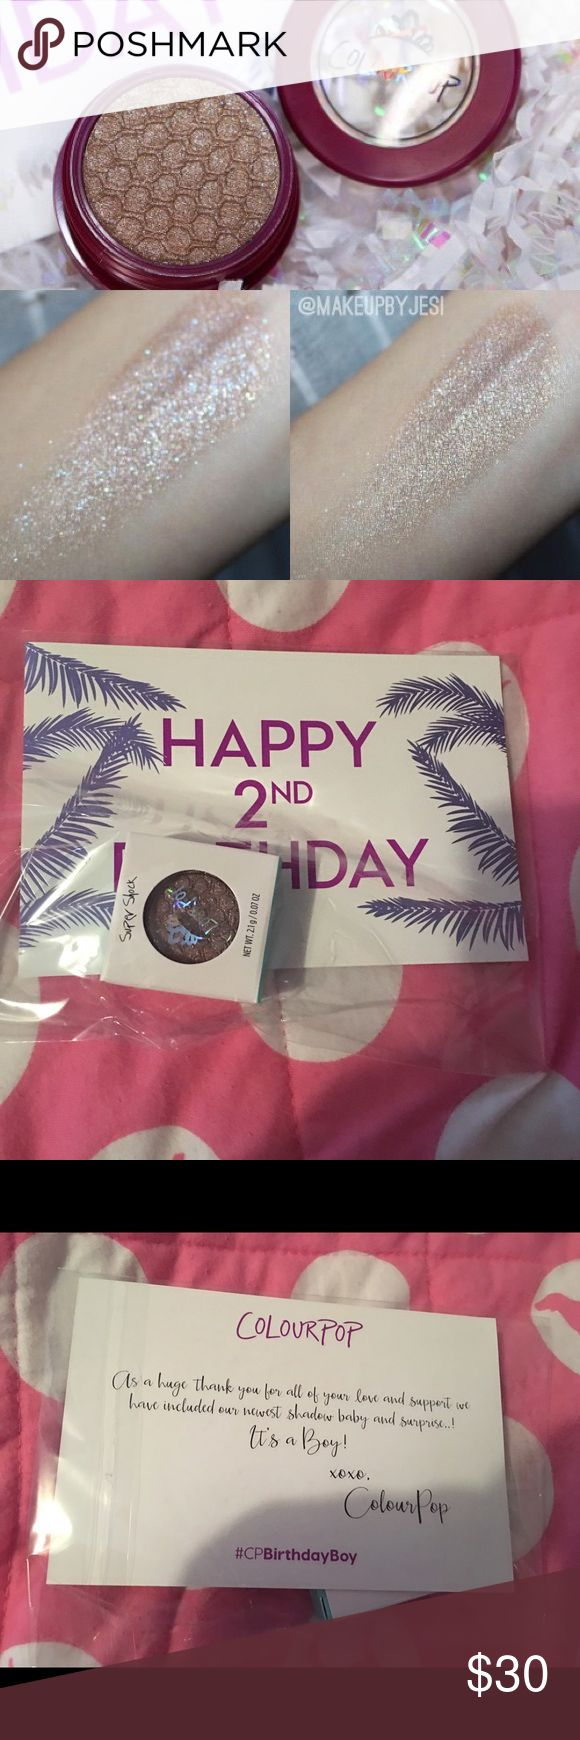 Colourpop Birthday Boy eyeshadow Birthday Boy eyeshadow from Colourpop..limited edition. Brand New in Packaging $20